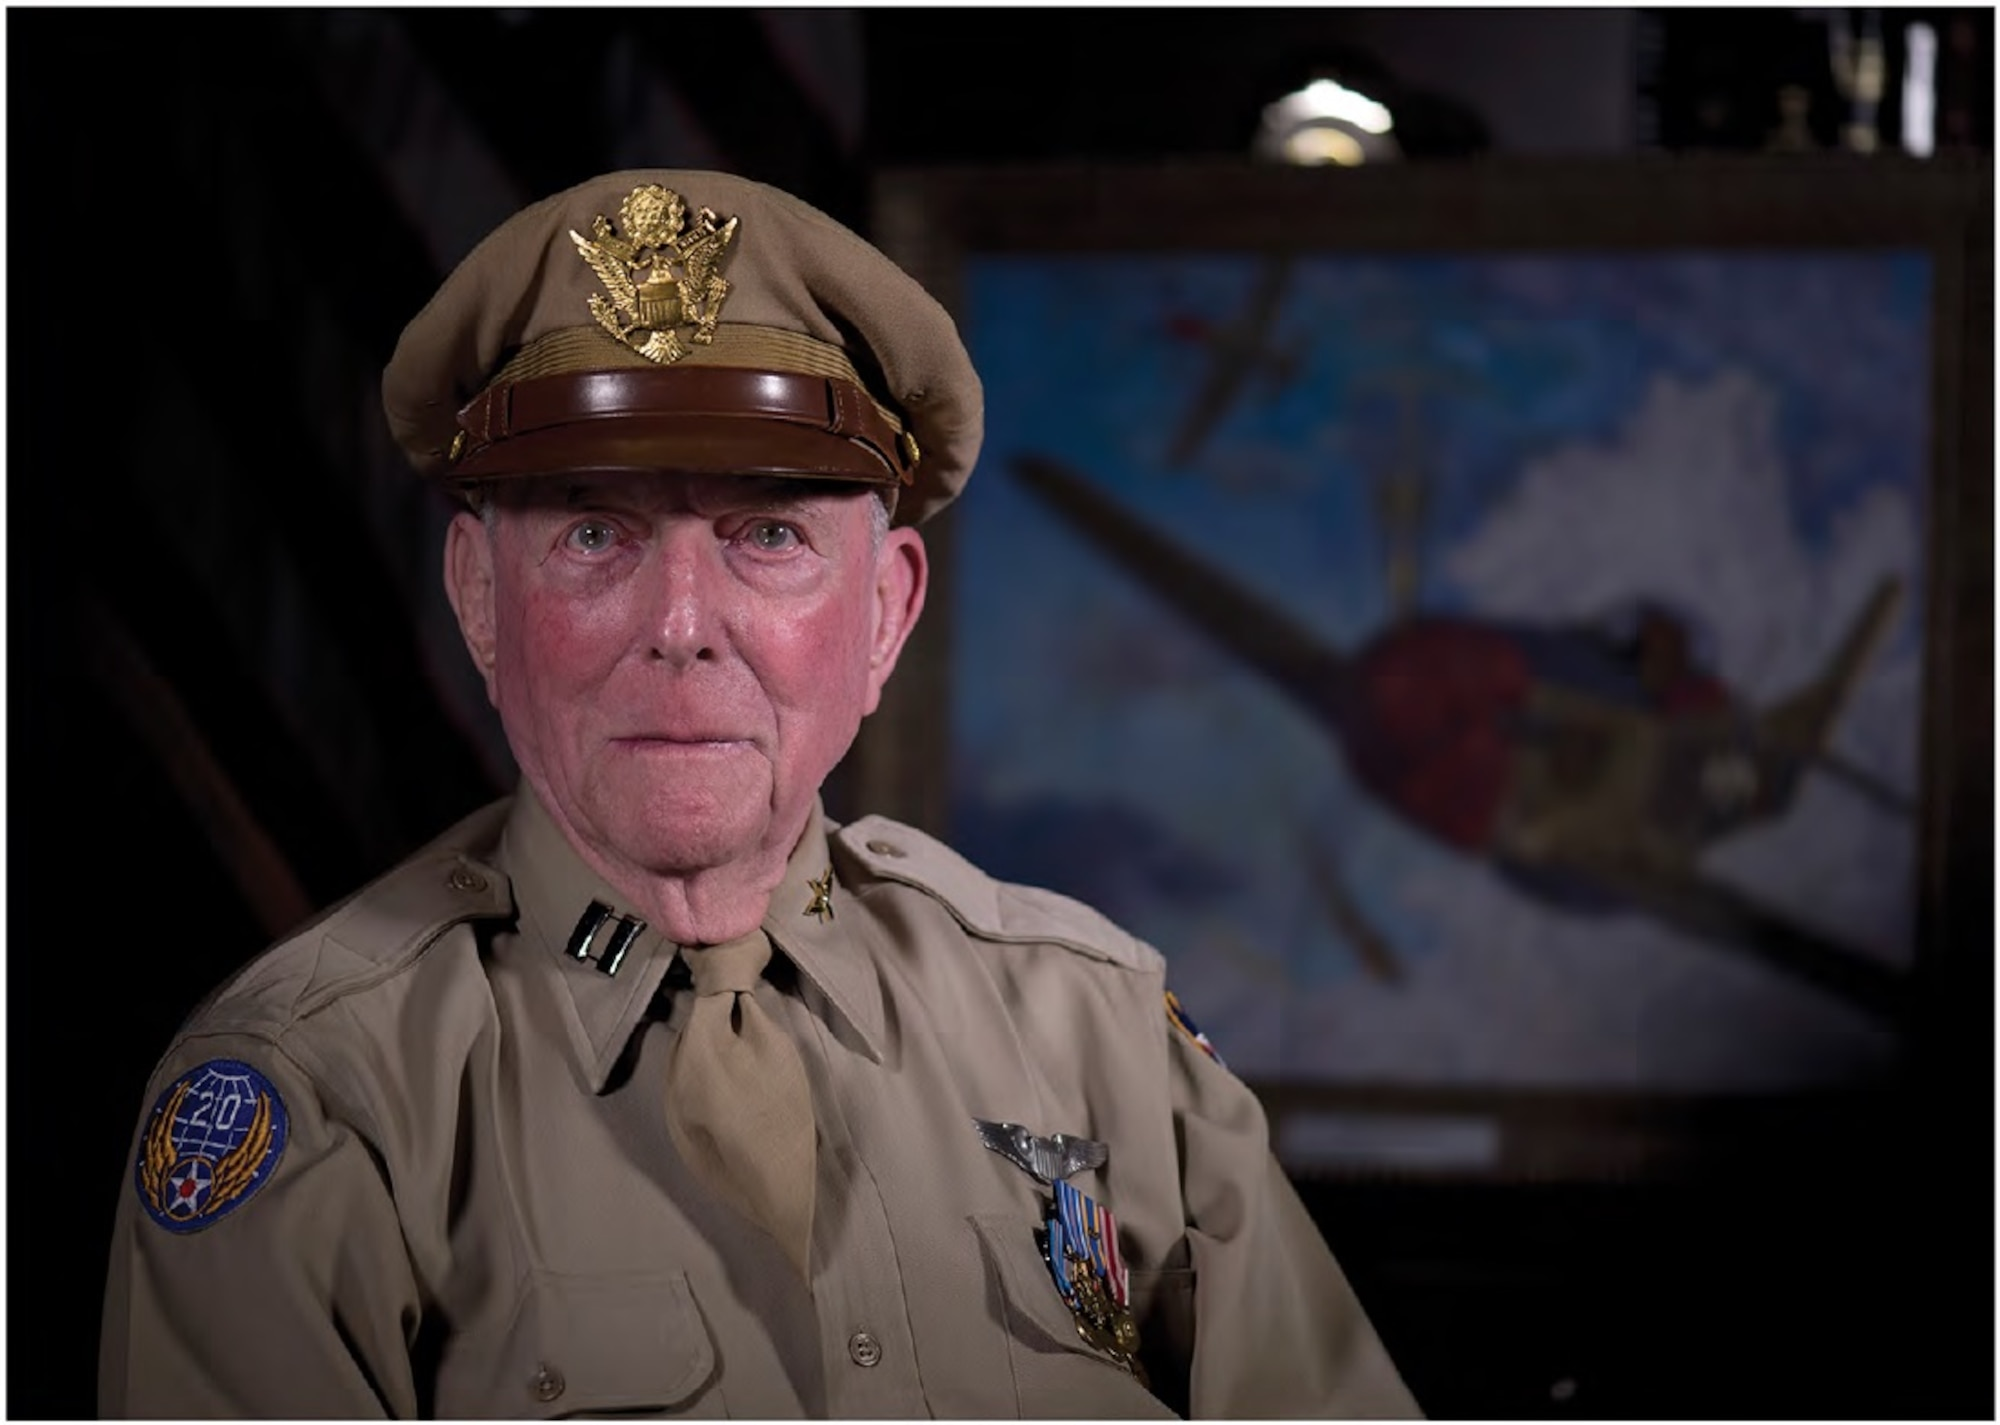 Capt Jerry Yellin, World War II fighter pilot, who flew the last combat mission in August 1945, was laid to rest with full military honors Jan. 15, at Arlington Cemetery, Va.